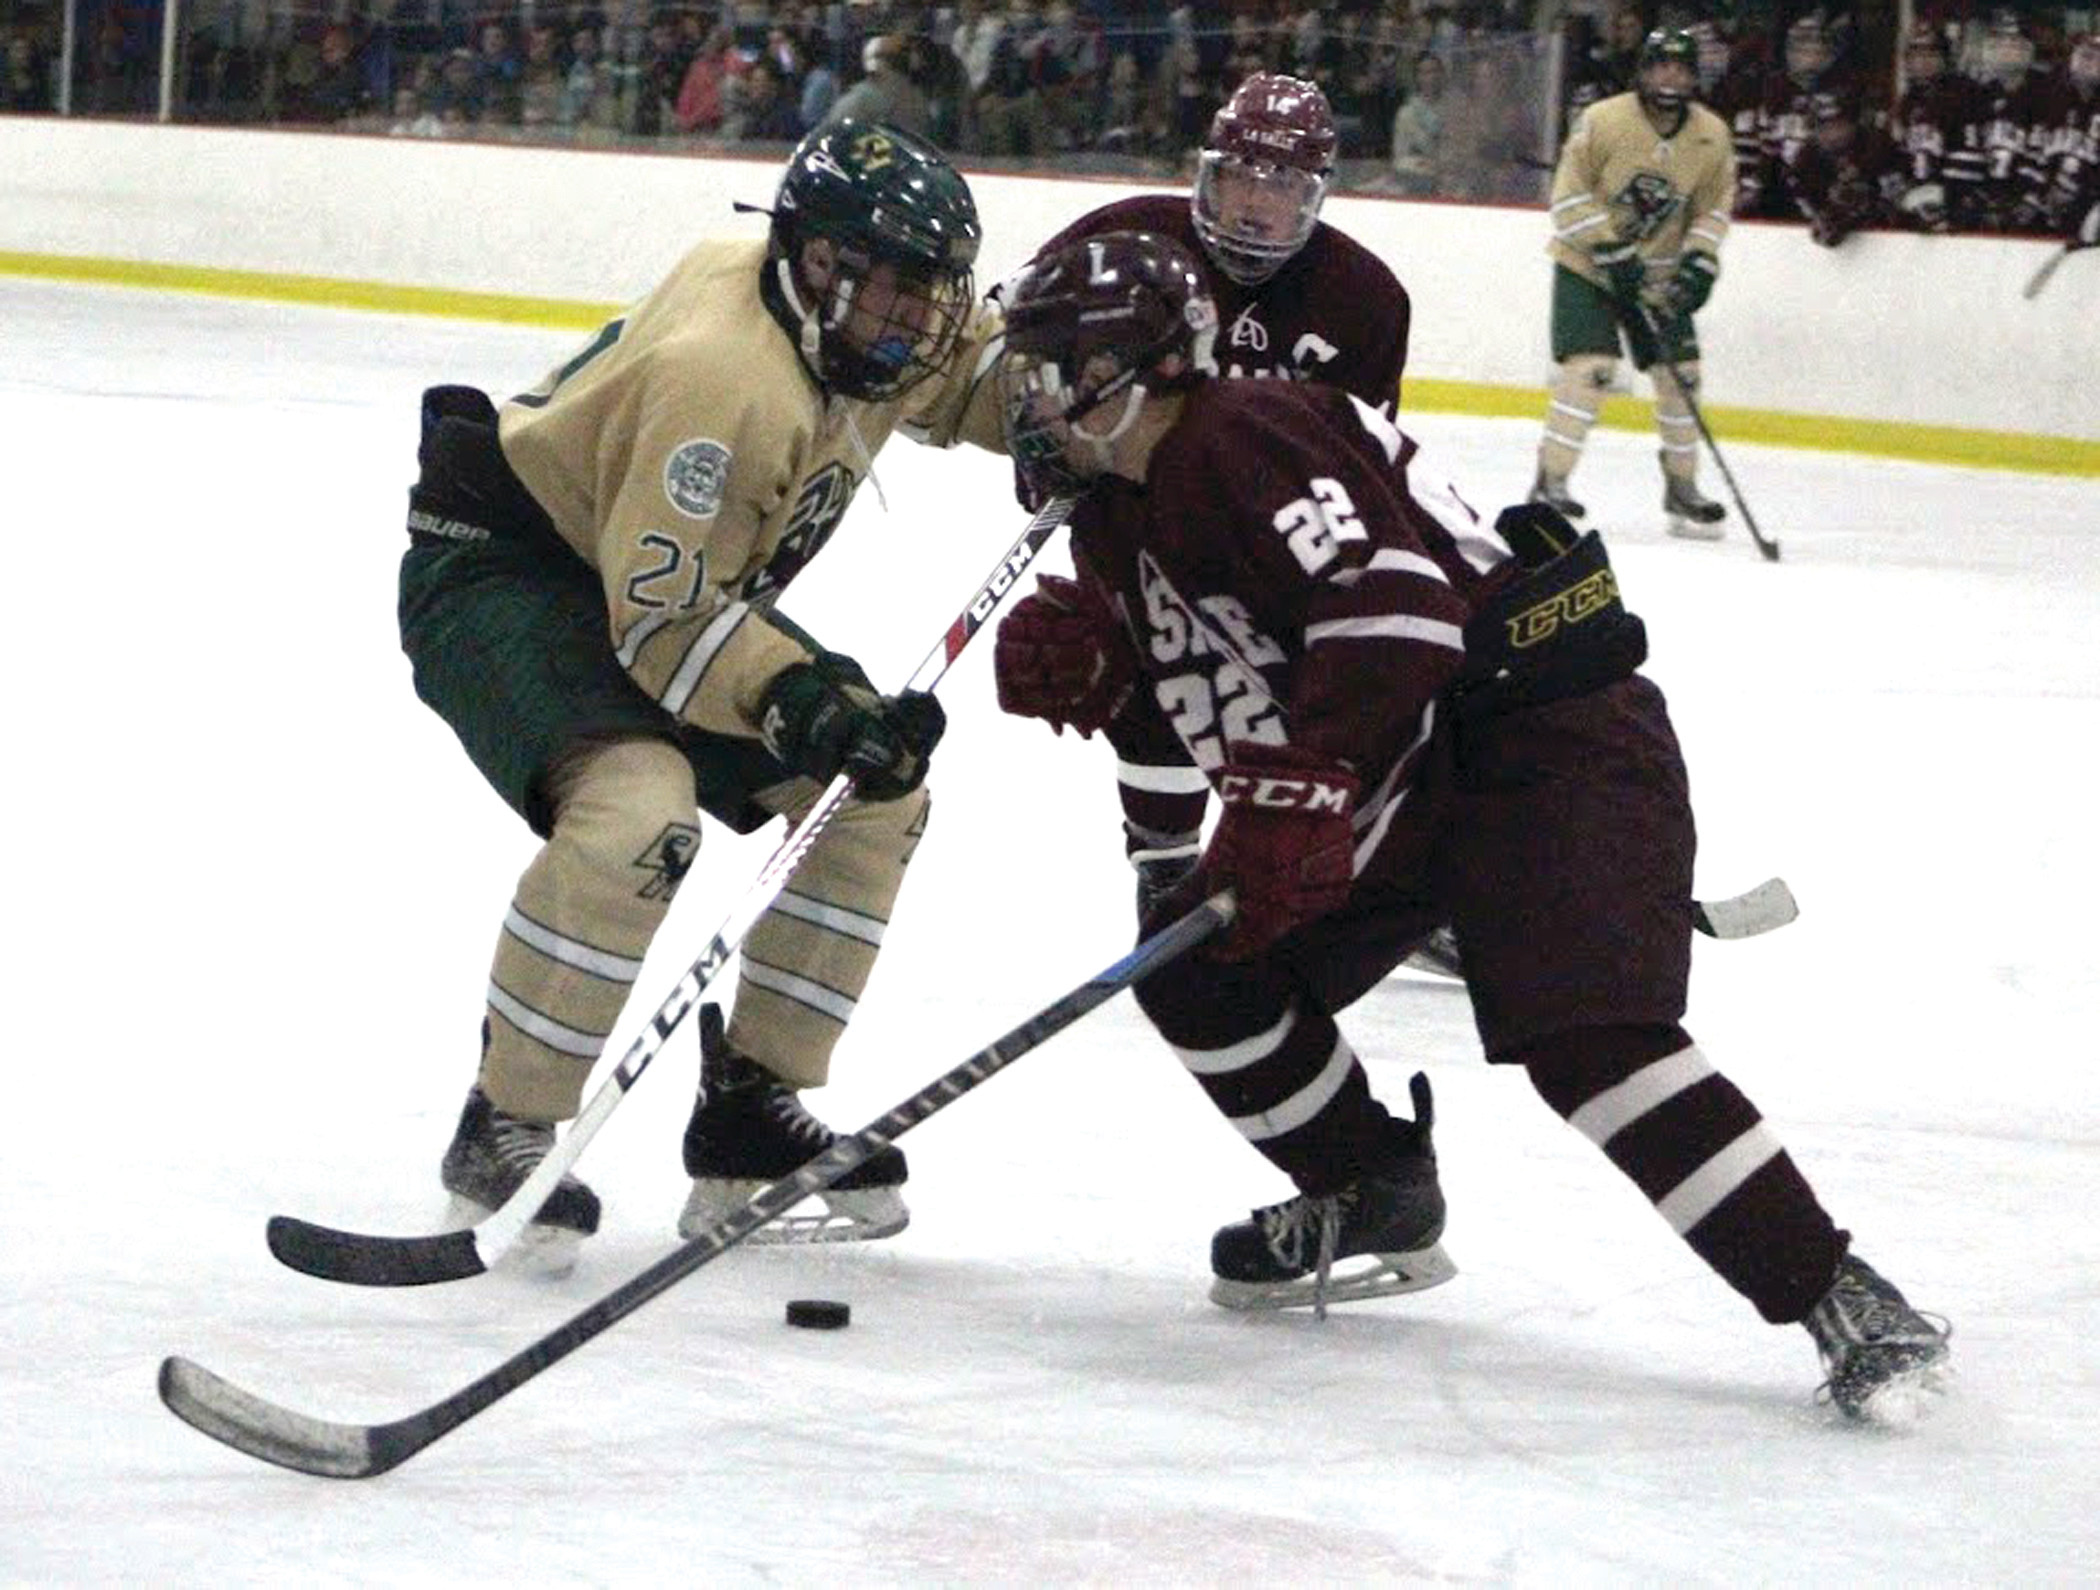 STALEMATE: Hendricken forward Andrew Hopgood tries to get by La Salle defenseman John Cardi. A late La Salle goal sent the game to overtime on Friday, but the bitter rivals would ultimately settle for a tie.